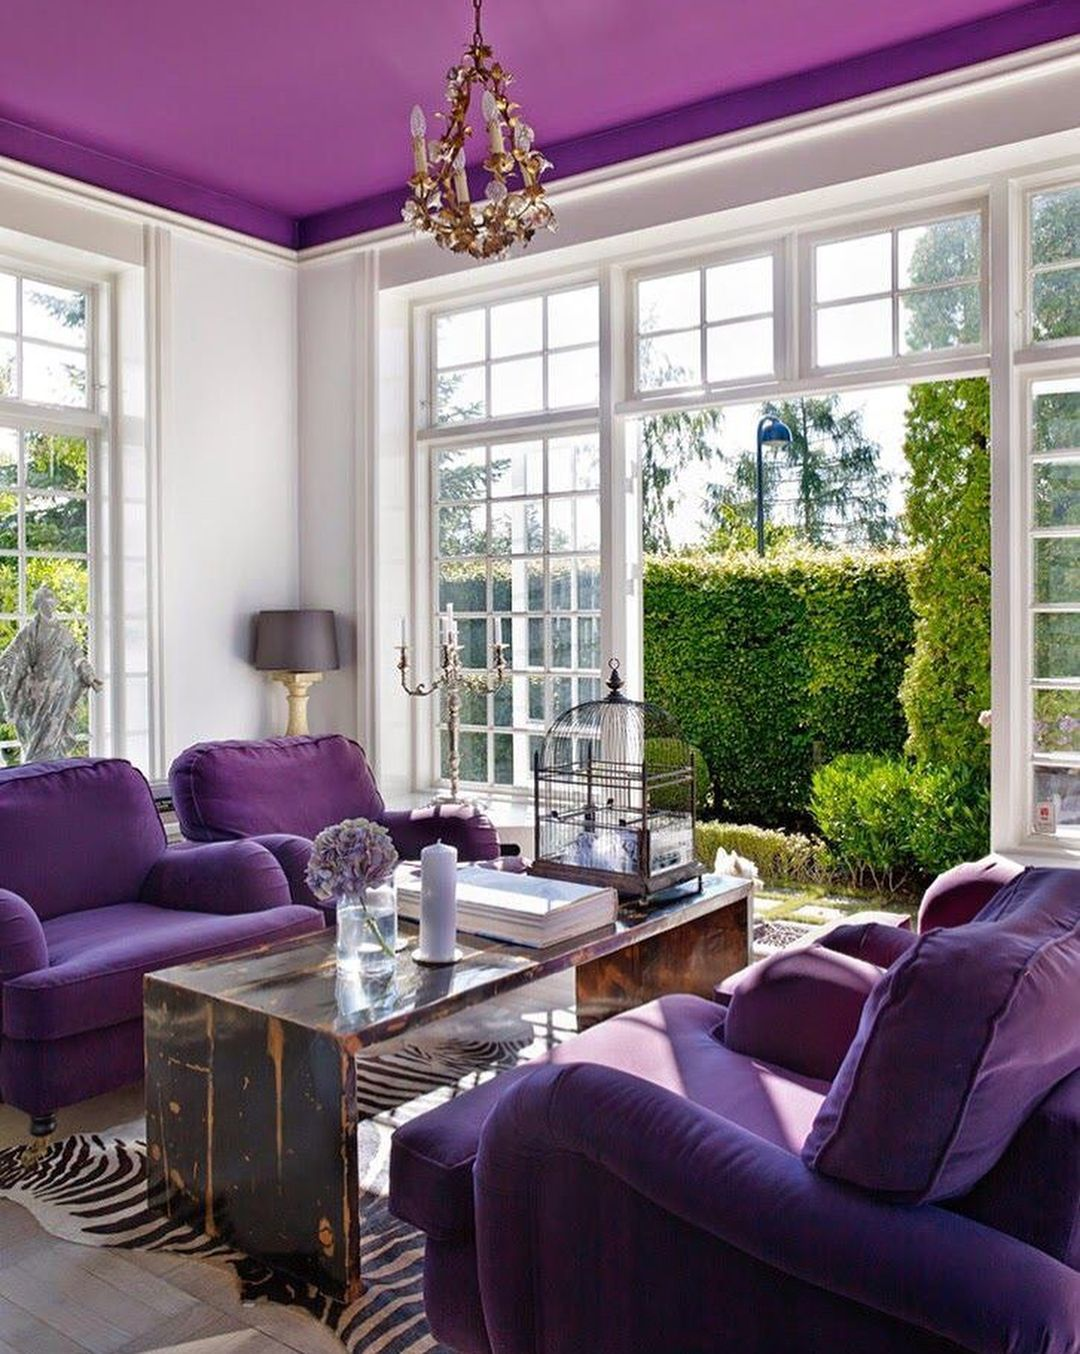 decorar con ultra violet, el color pantone 2018